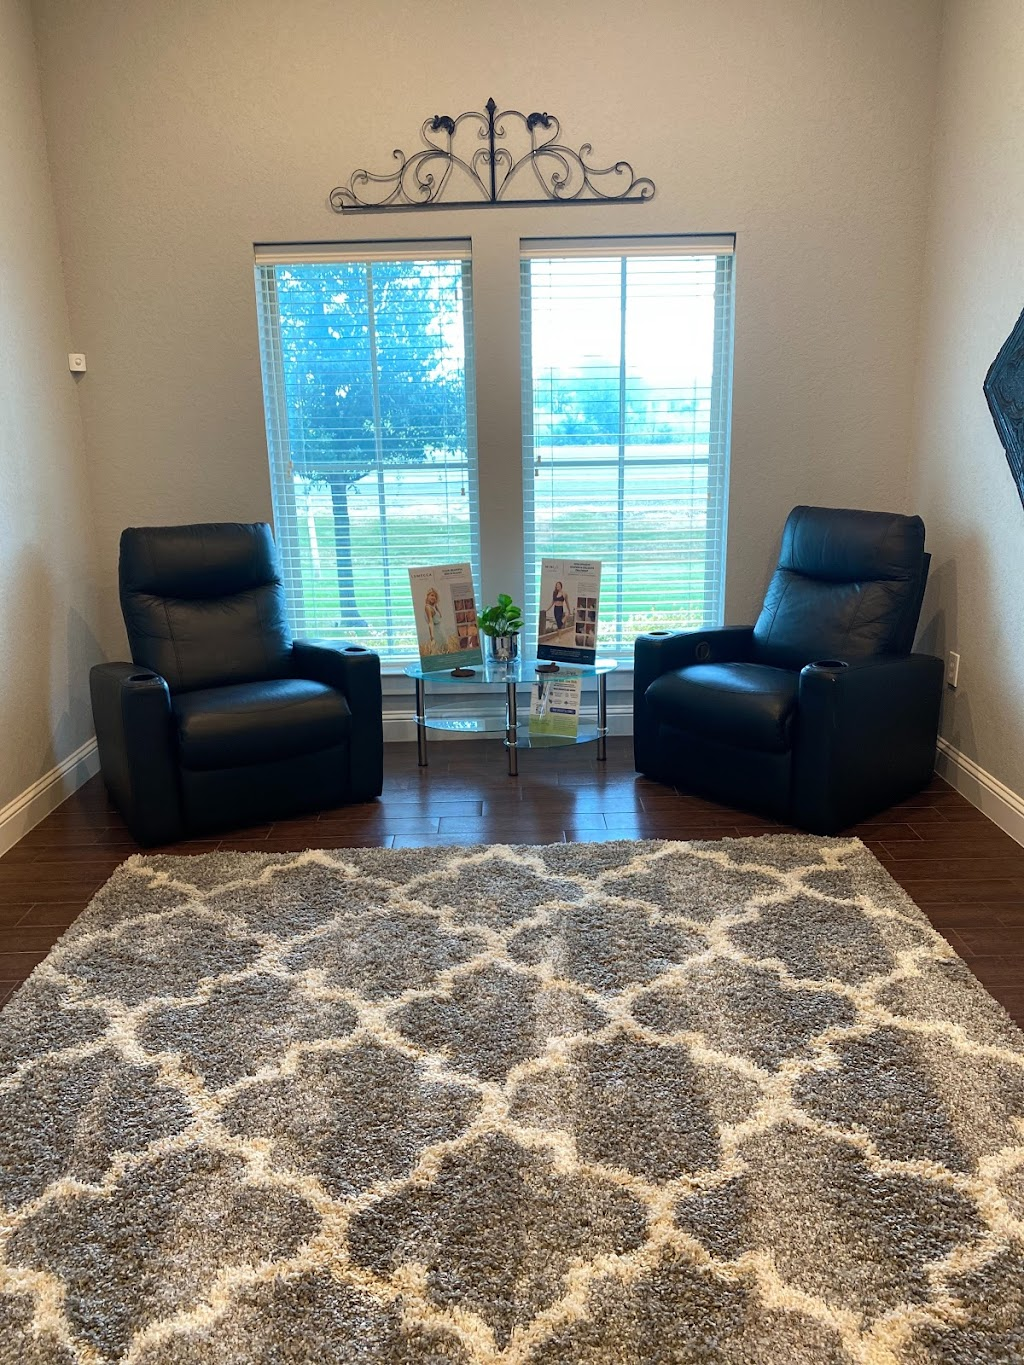 Elan Med Spa & Clinic - spa  | Photo 6 of 10 | Address: 1795 N Hwy 77 Suite 105, Waxahachie, TX 75165, USA | Phone: (972) 525-0800